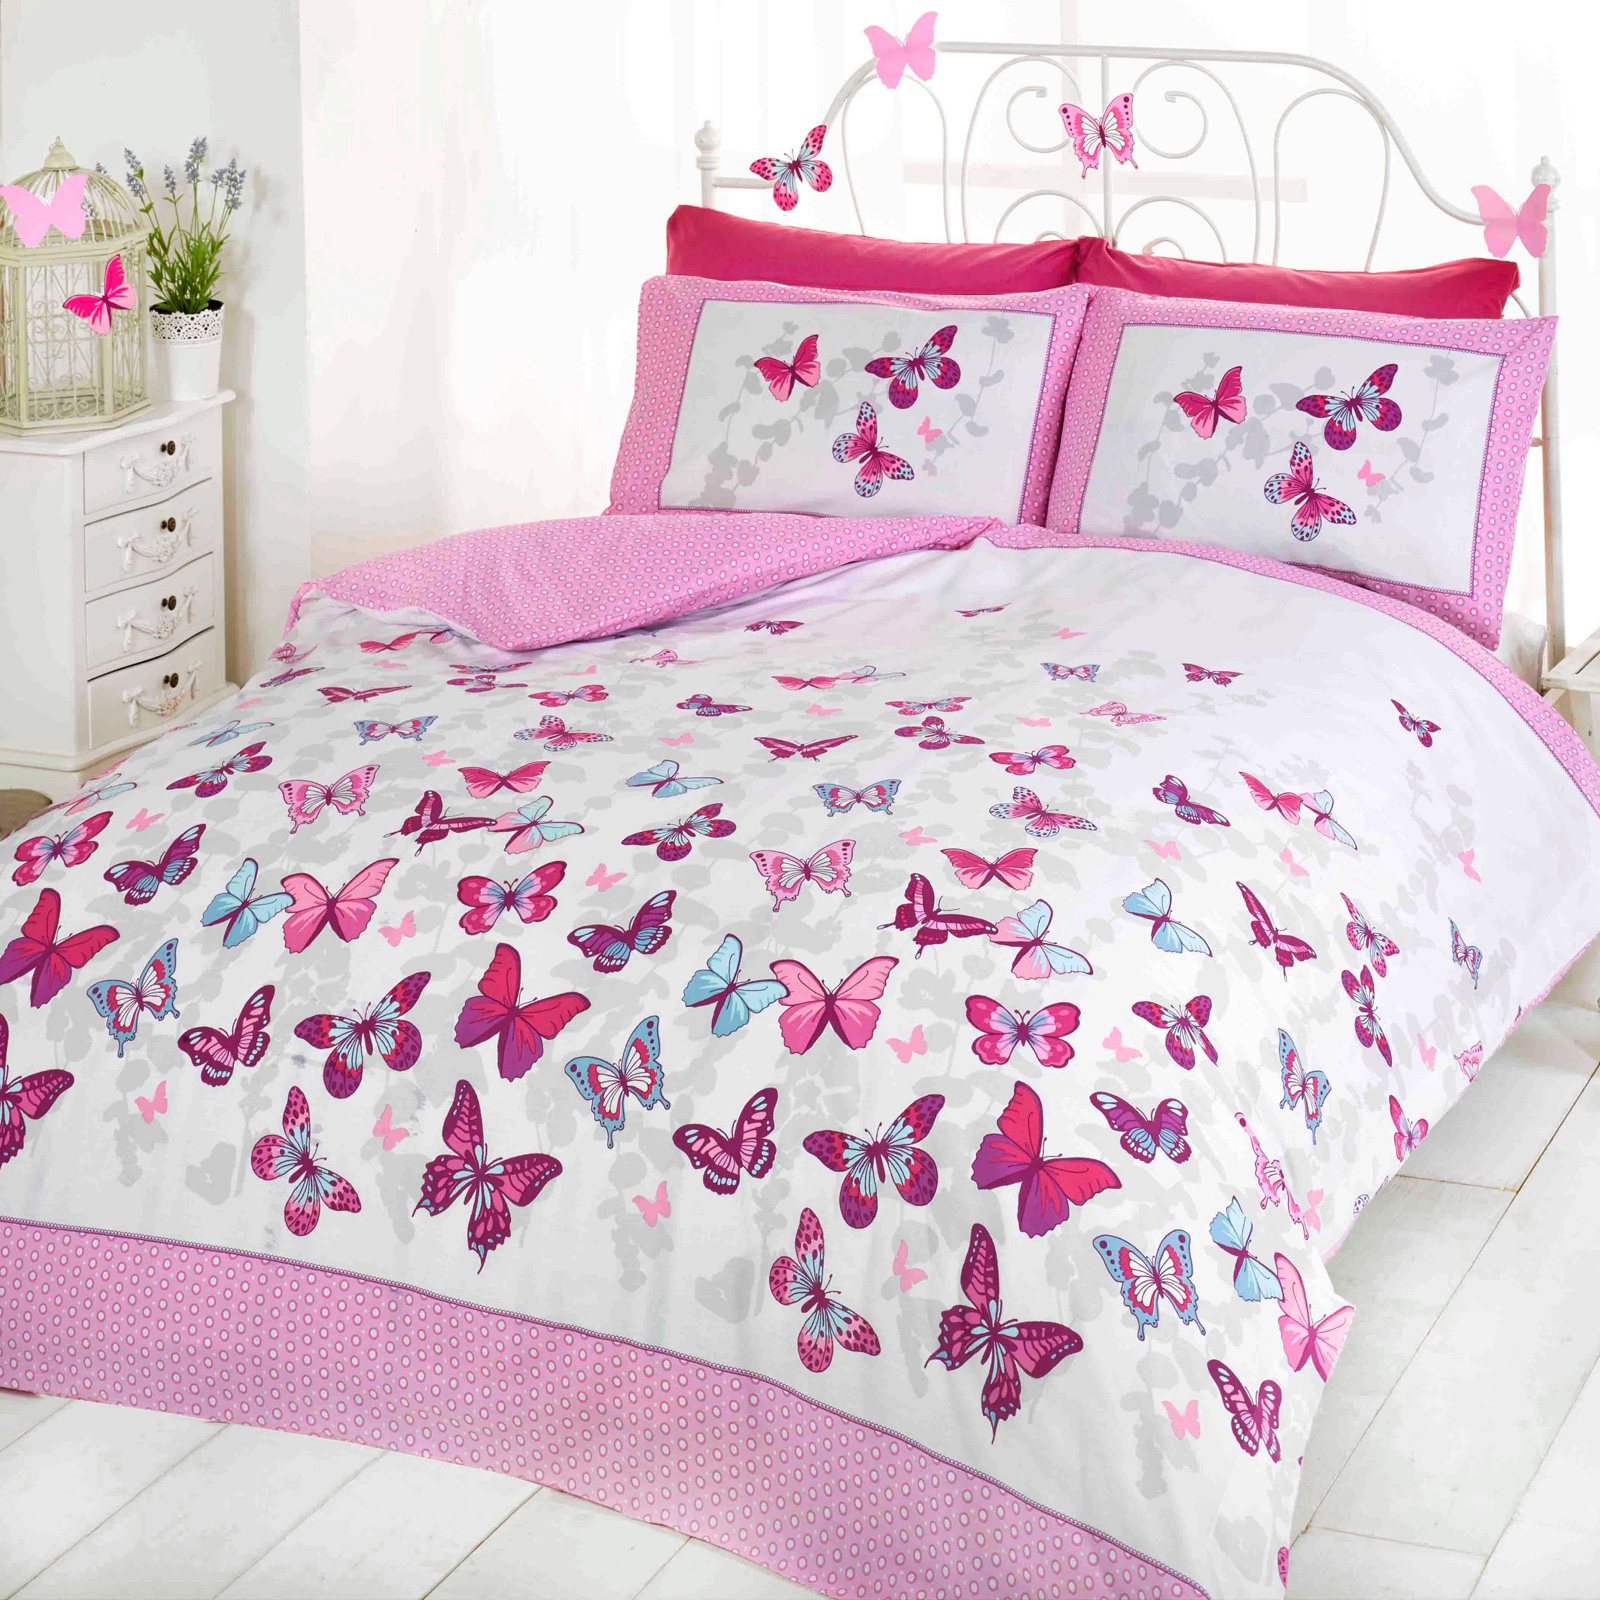 girls butterfly bedding reversible polka dot cotton rich duvet cover bed set ebay. Black Bedroom Furniture Sets. Home Design Ideas